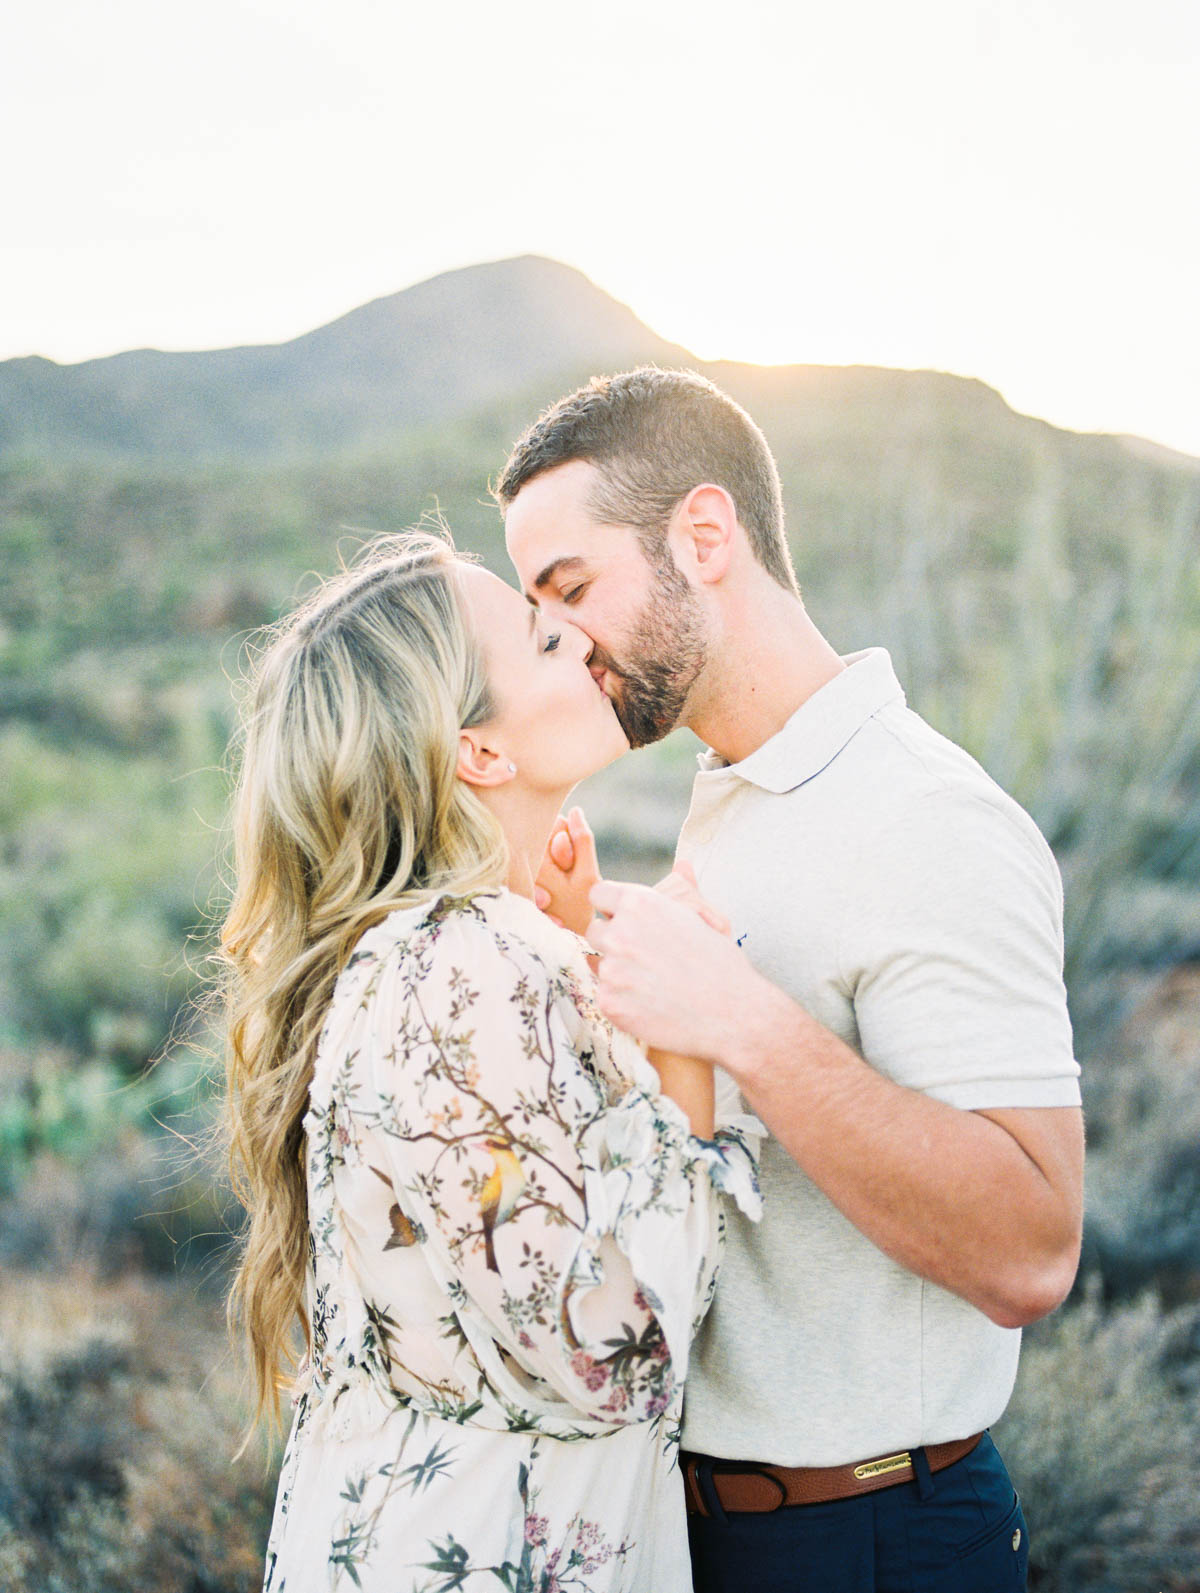 tucson-desert-engagement-session-50.jpg